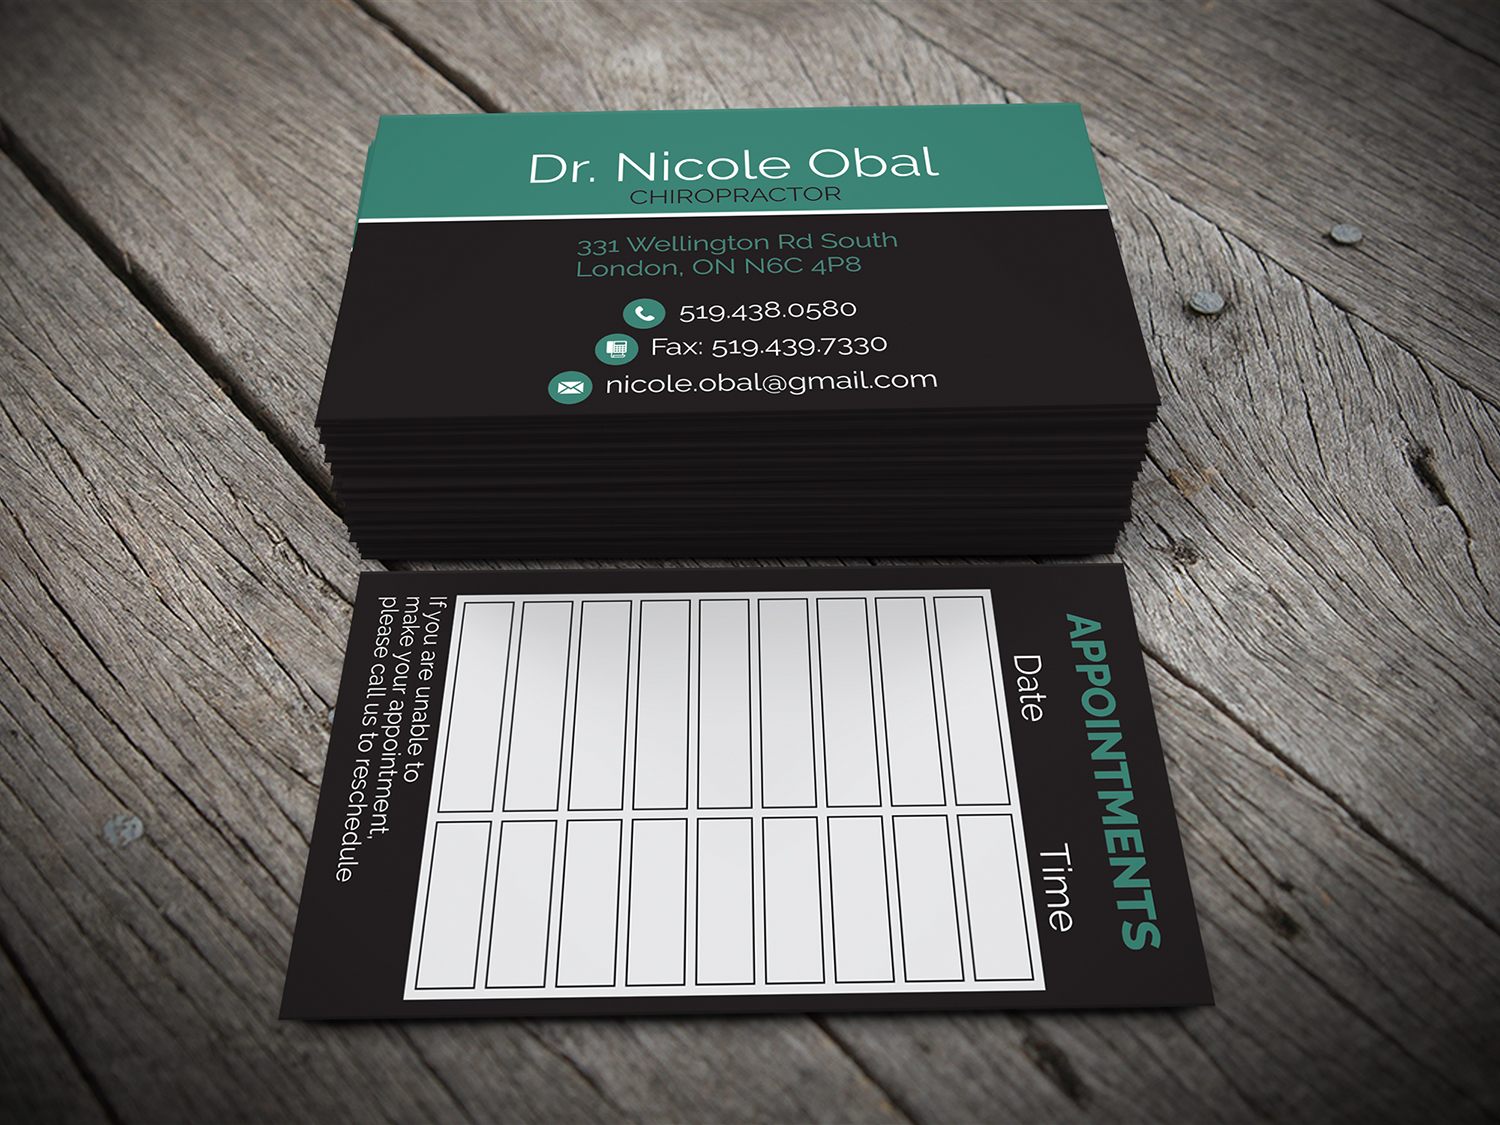 Modern professional medical business card design for a company by business card design by alhemique1 for this project design 10935322 reheart Choice Image